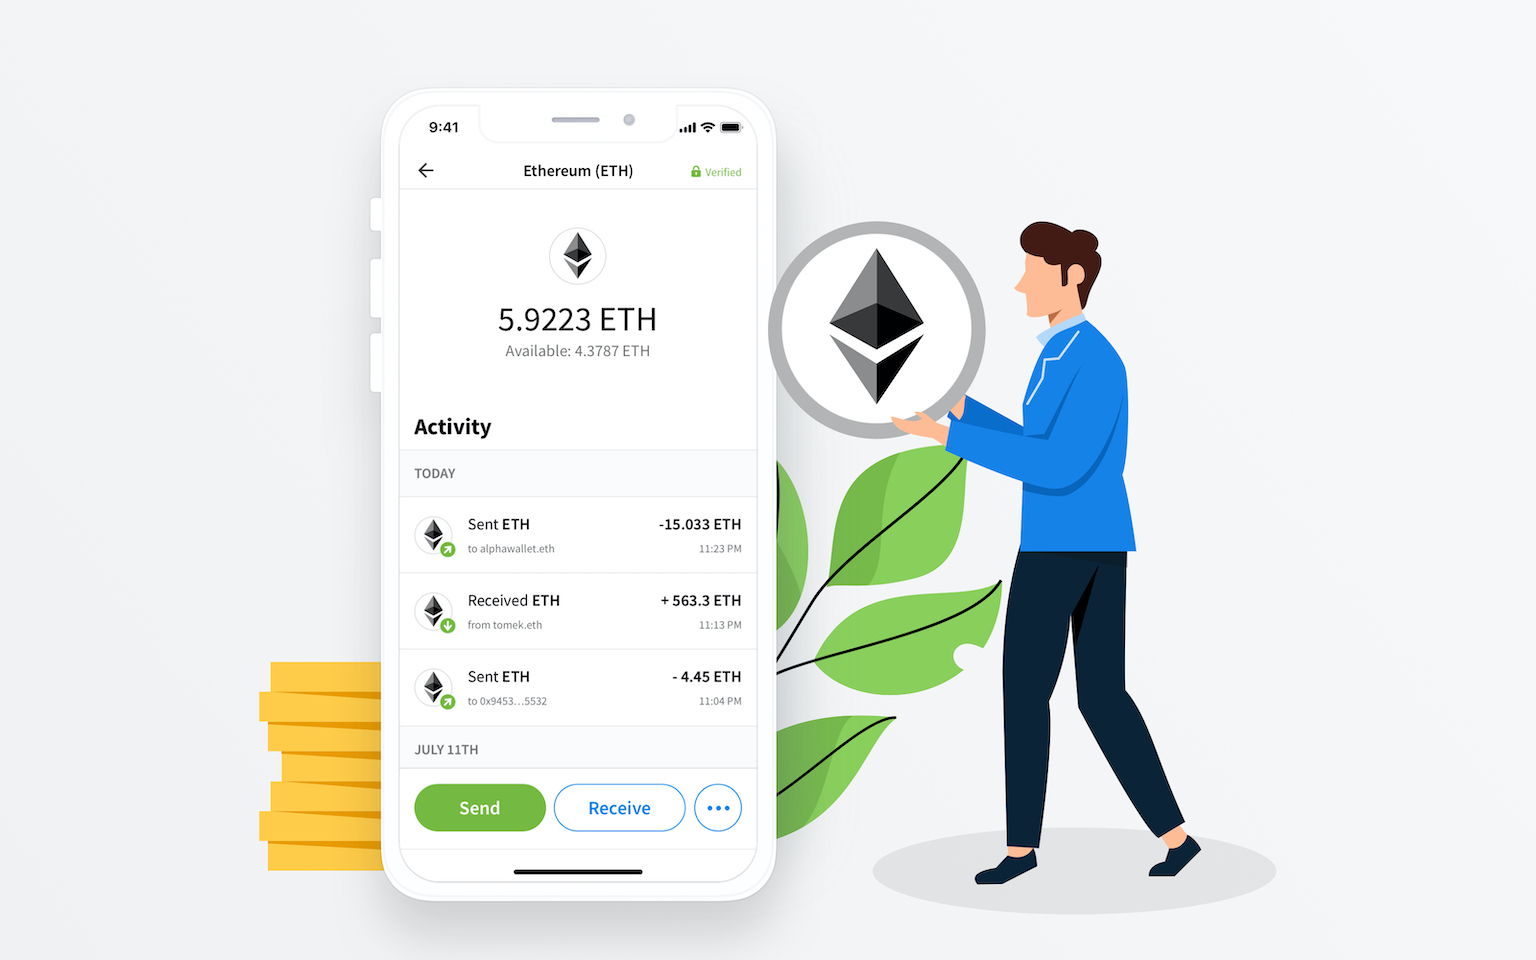 How to buy ETH in AlphaWallet